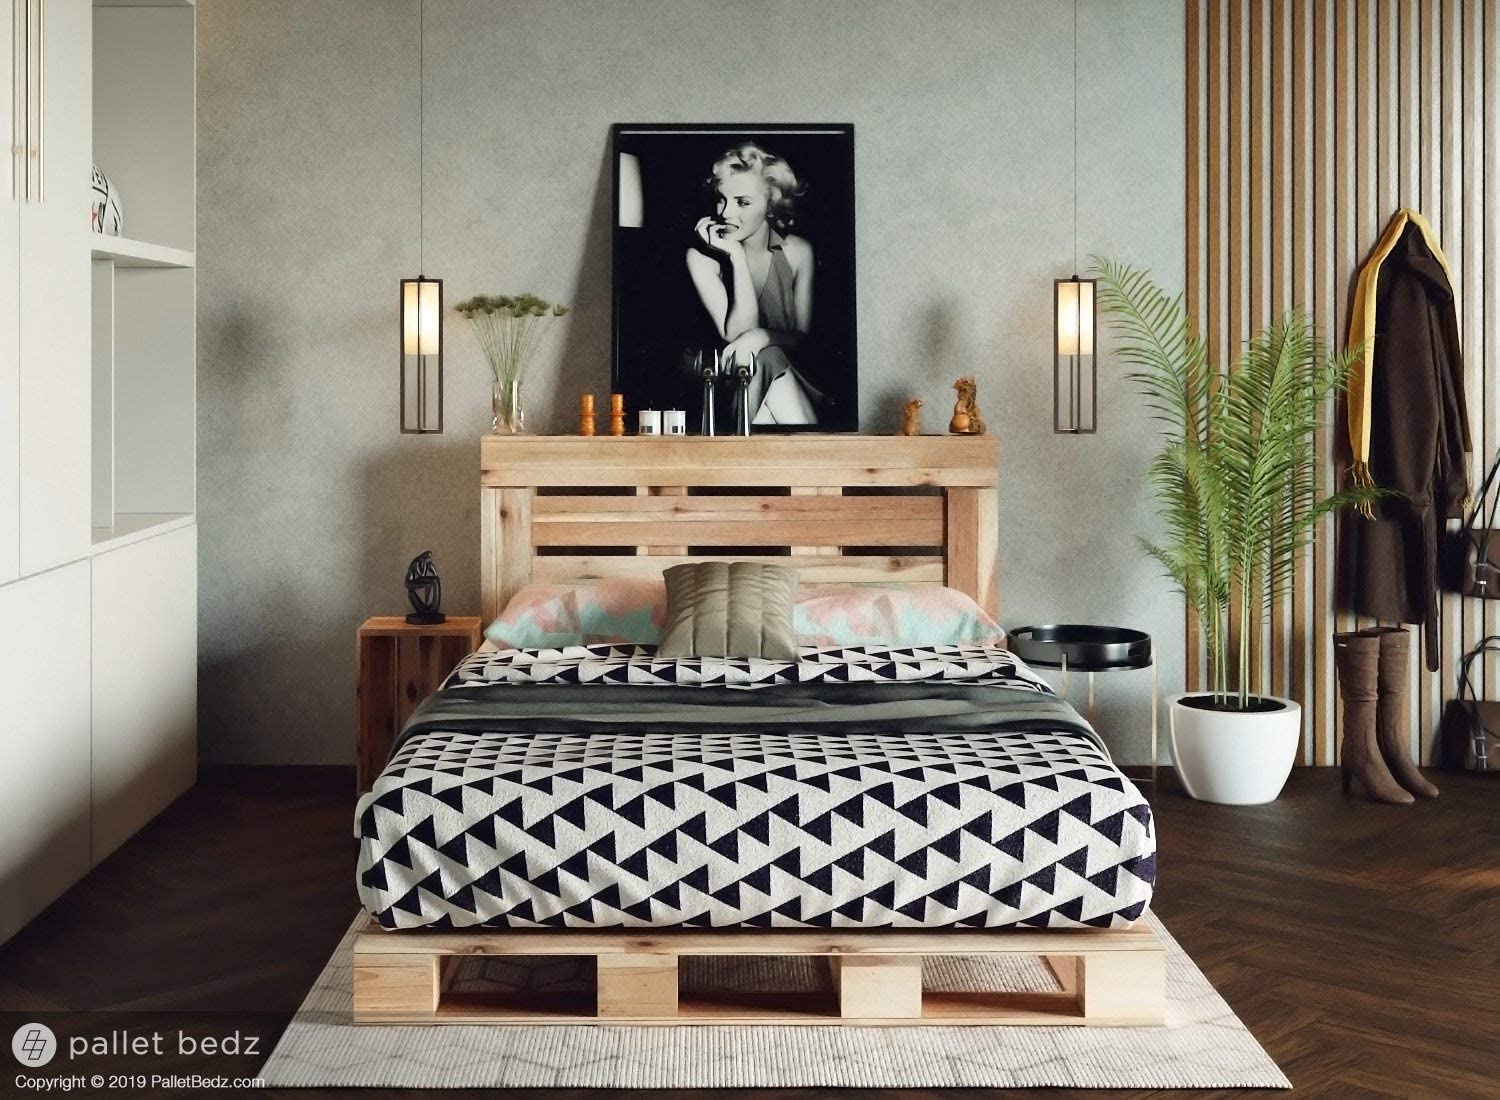 Full Size Pallet Bed For The Modern And Natural Home 100 Hand Crafted In The Usa Amazon Ca Home